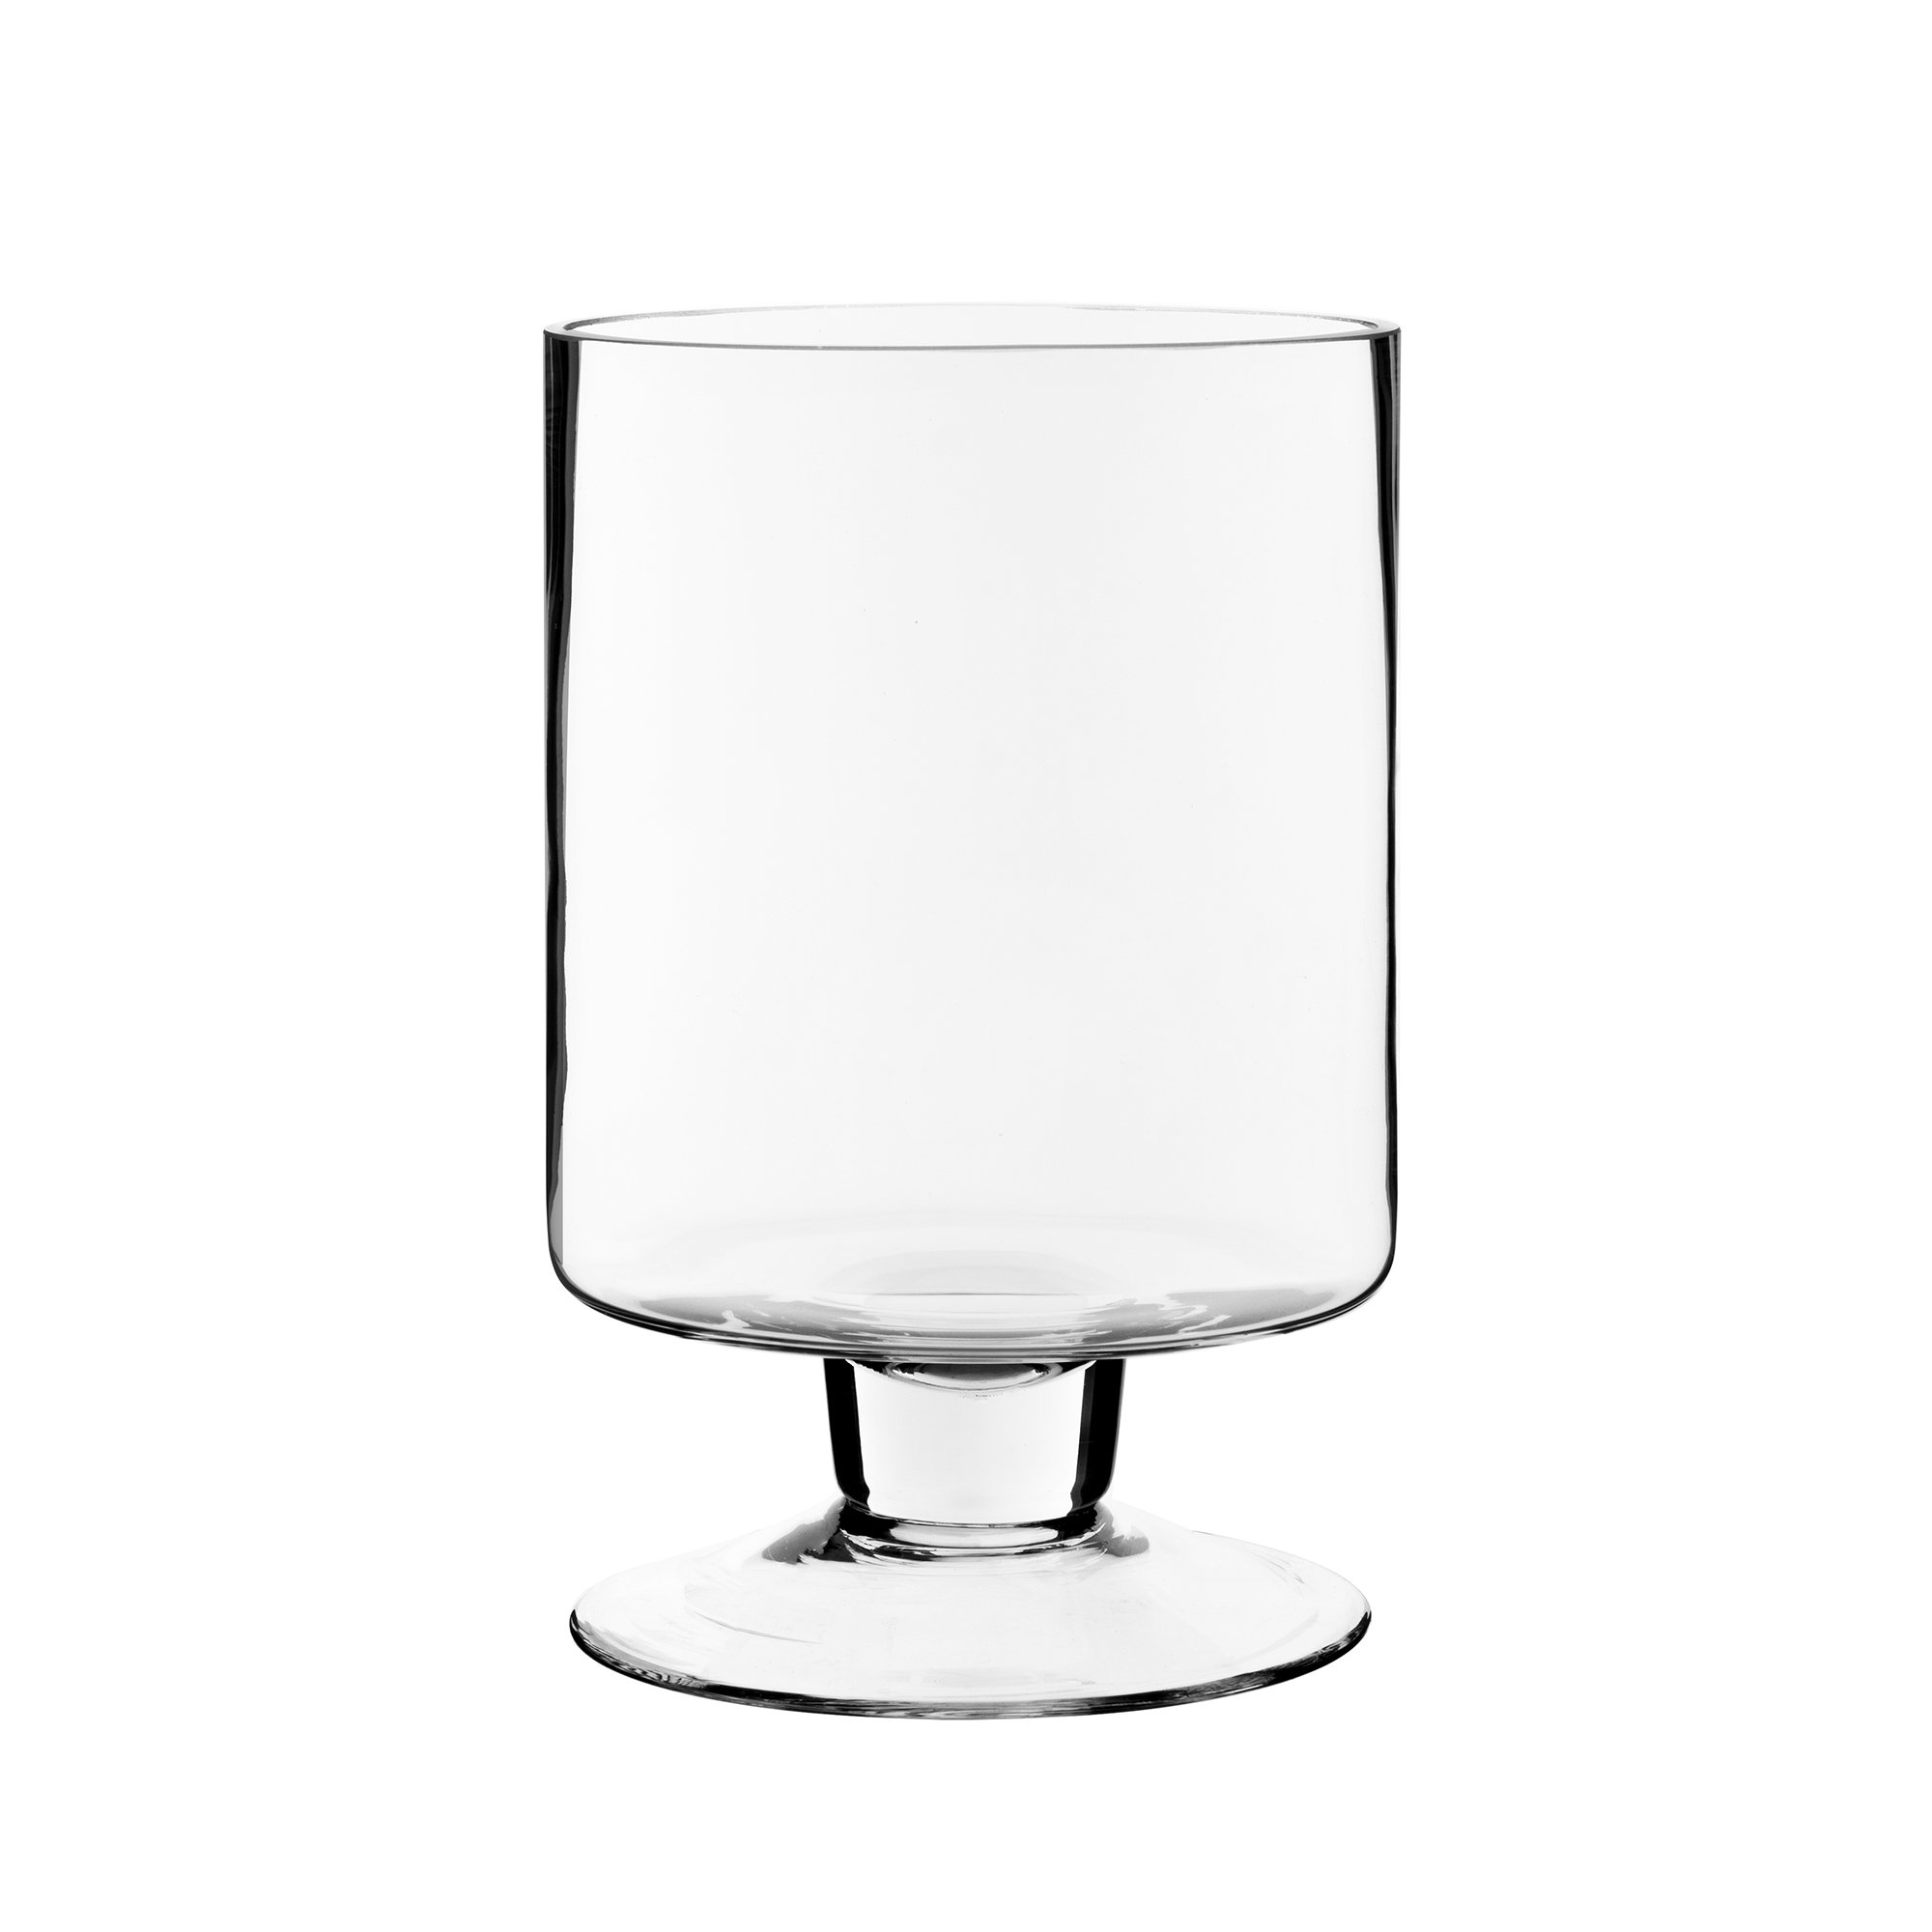 CYS EXCEL Candle Holders, Hurricane Candle Holder, Stemmed Candle Holder (H:9'' D:6'') Pack of 1